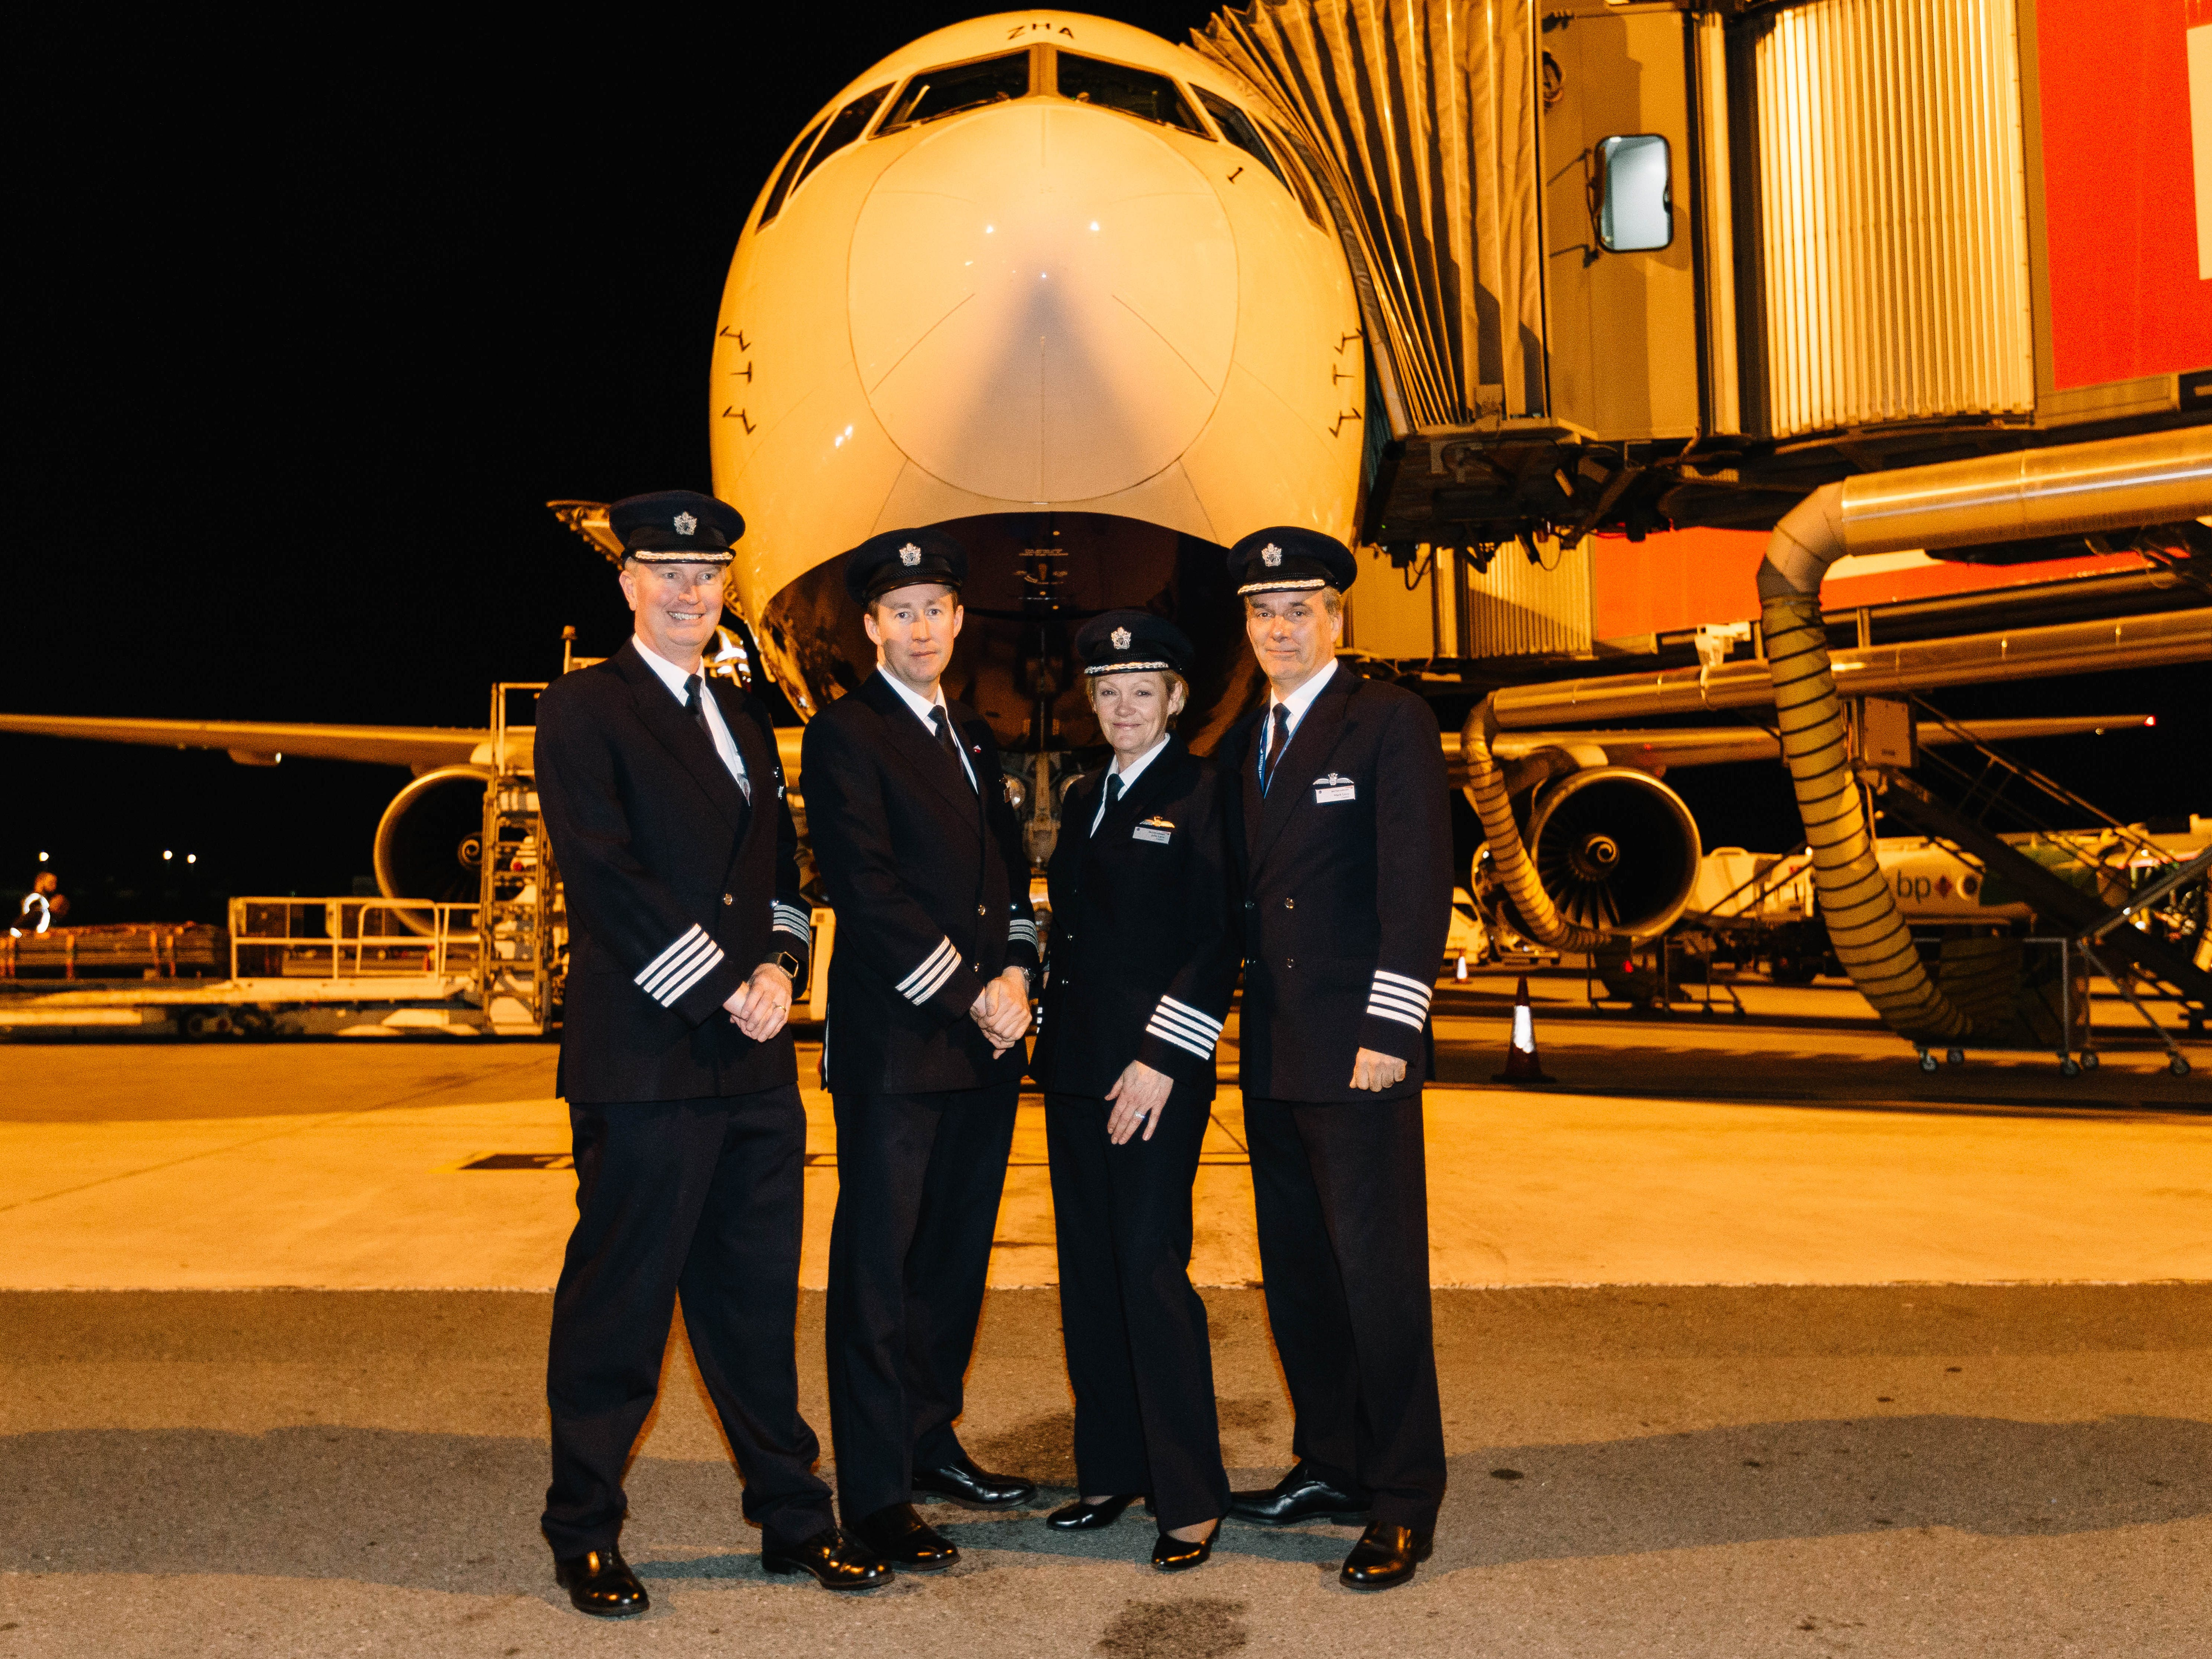 British Airways crew pose as the last Boeing 767 in the airline's fleet was retired on Nov. 25, 2018.